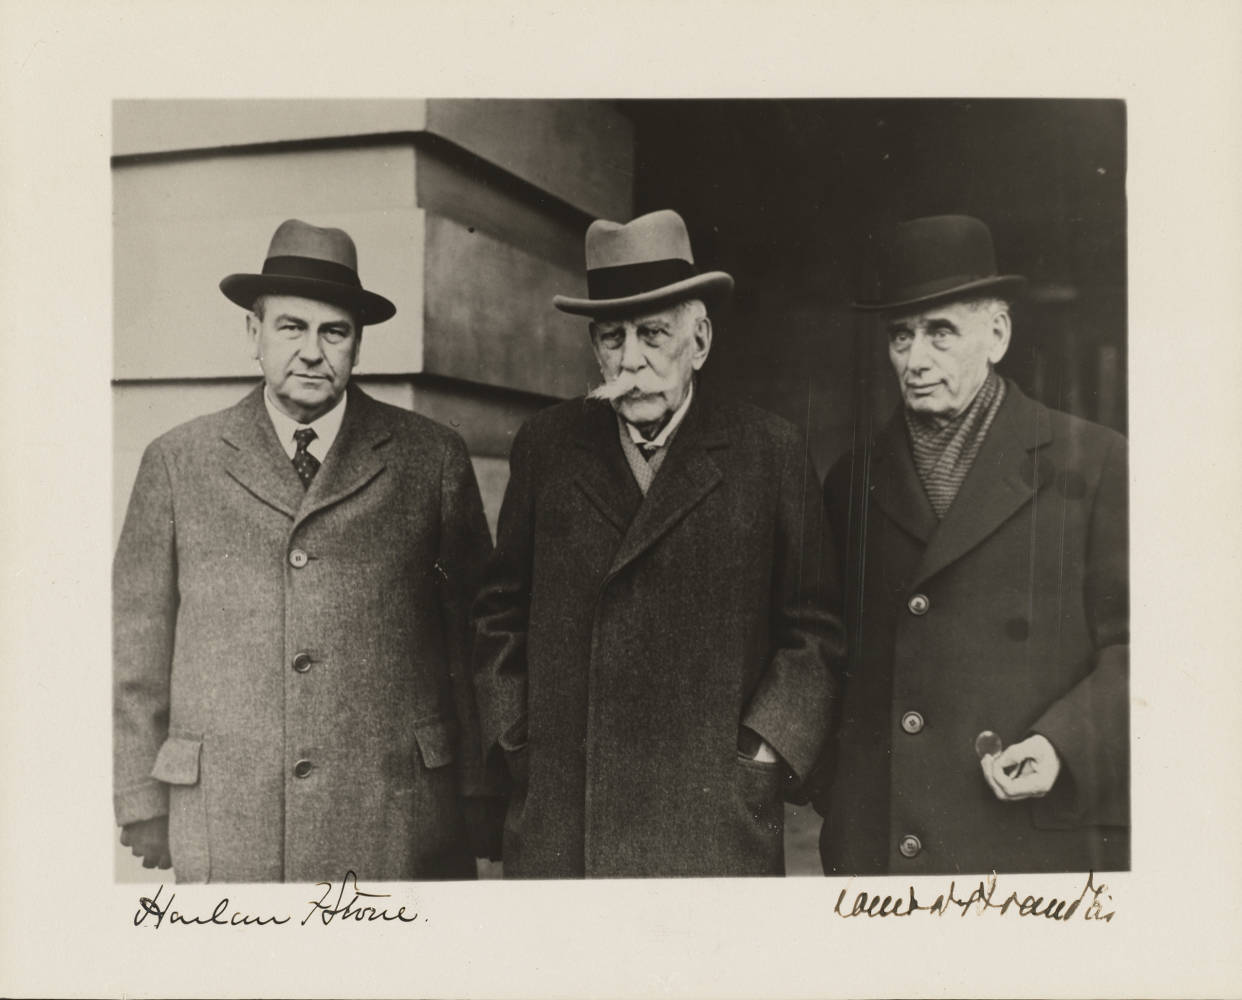 Historical photo of U.S. Supreme Court Justices Harlan Fiske Stone, Oliver Wendell Holmes, and Louis Dembitz Brandeis , ca. 1927